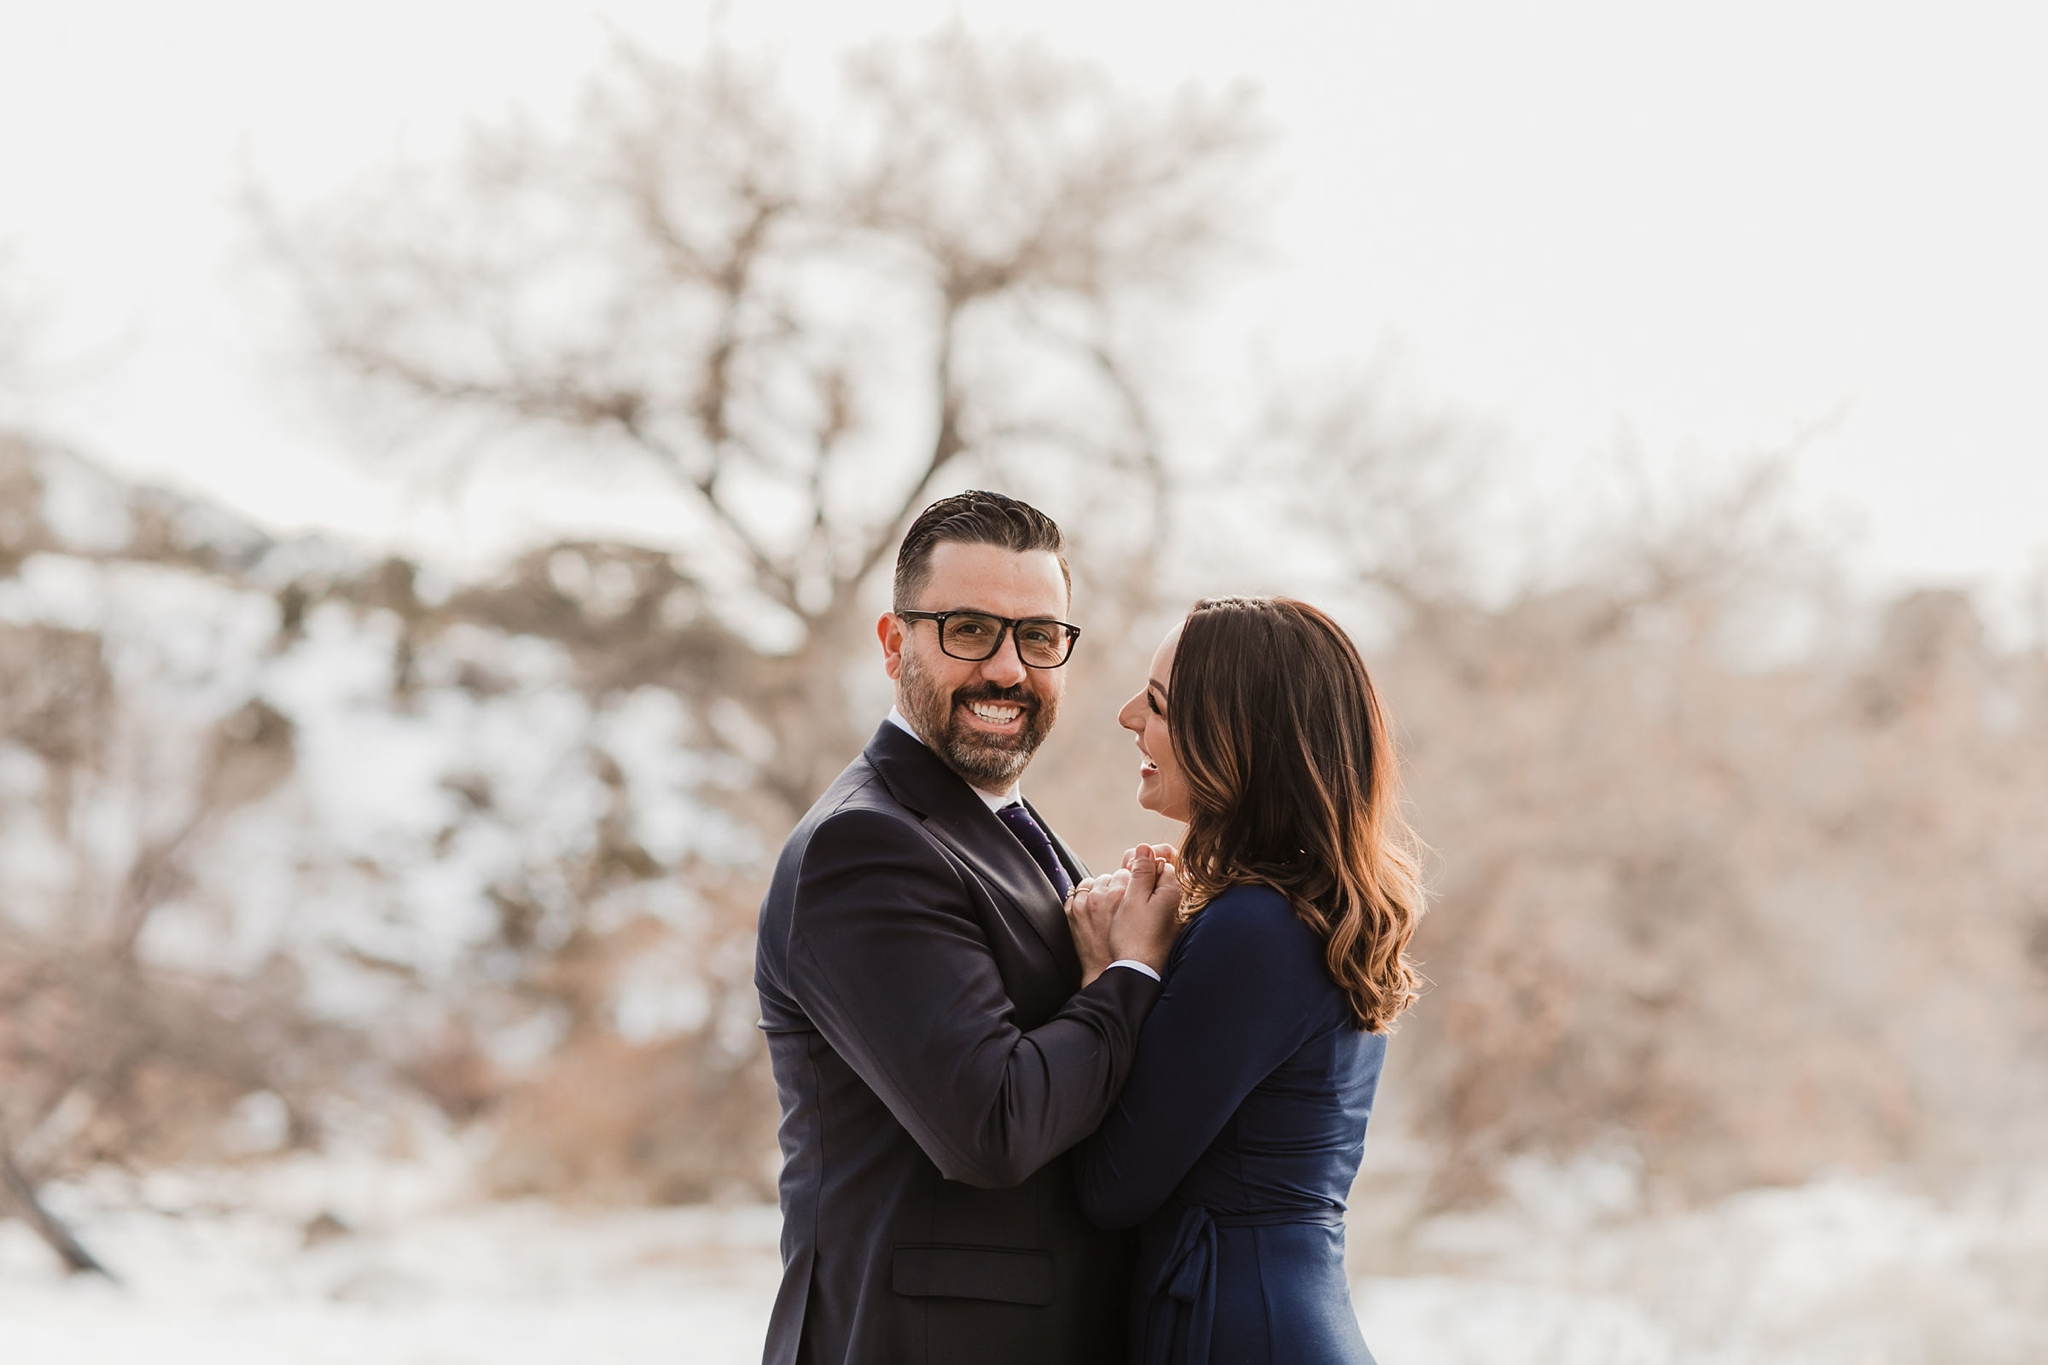 Alicia+lucia+photography+-+albuquerque+wedding+photographer+-+santa+fe+wedding+photography+-+new+mexico+wedding+photographer+-+new+mexico+wedding+-+engagement+-+winter+engagement+-+albuquerque+engagement_0006.jpg